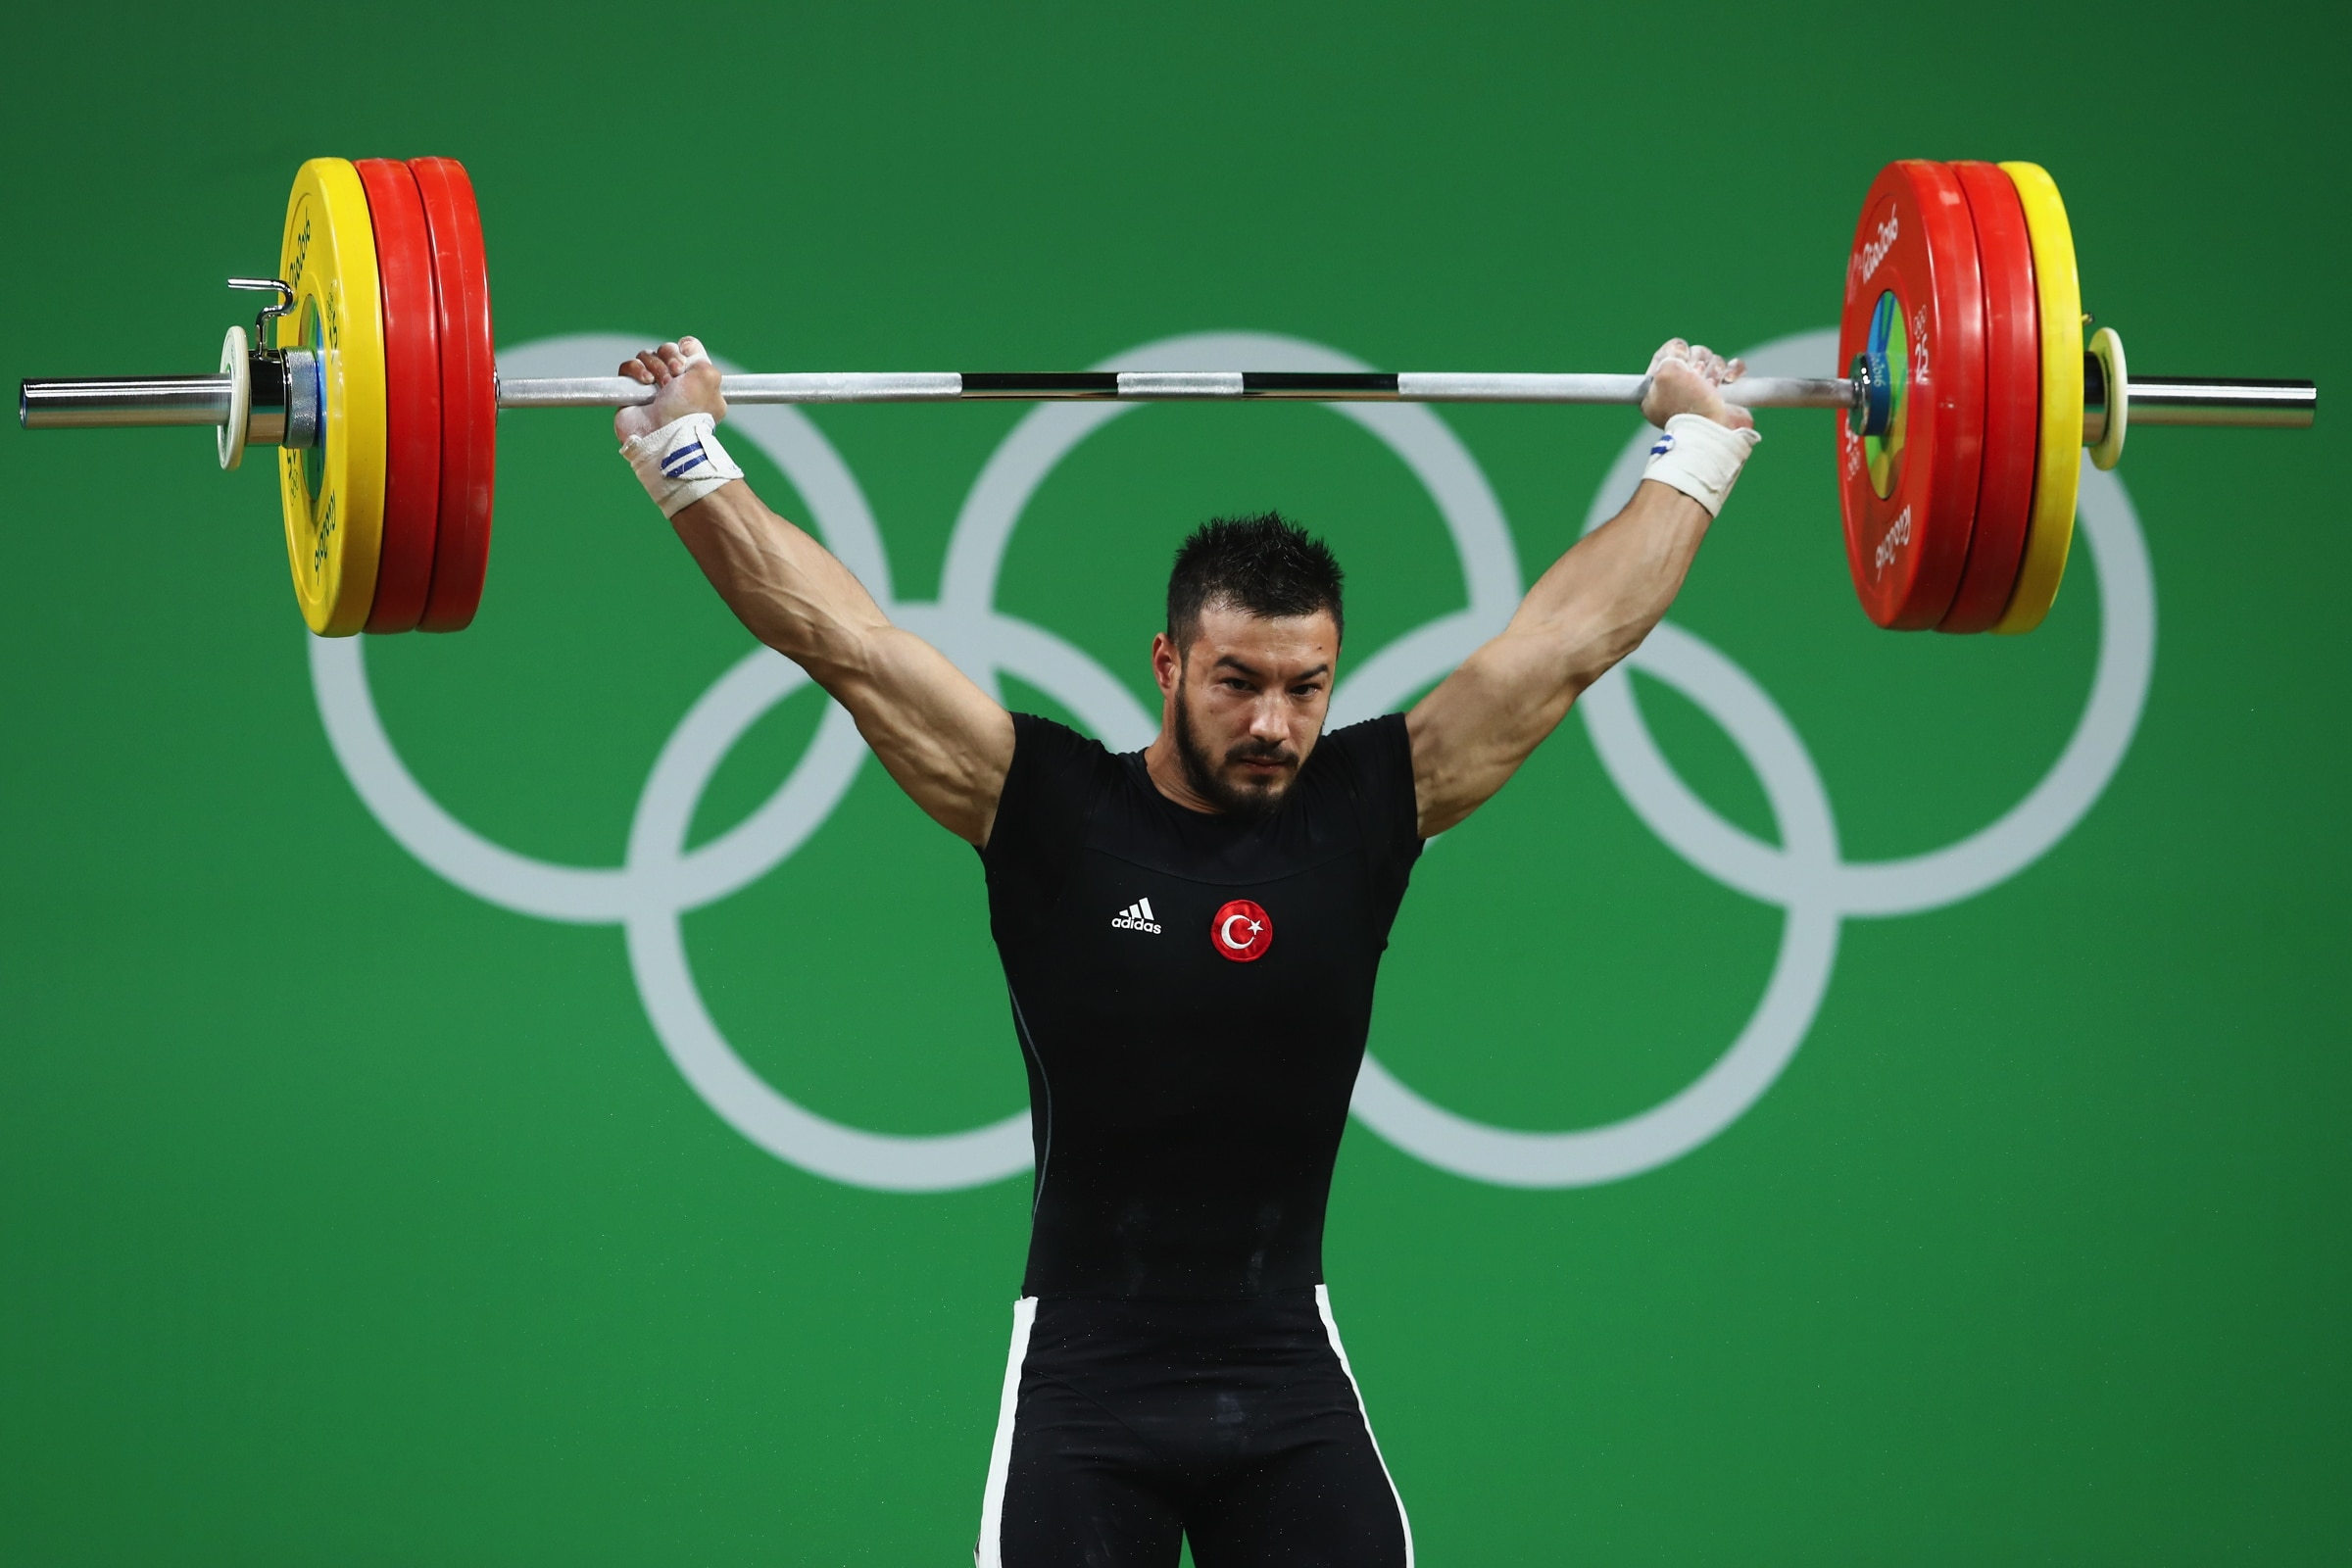 Weightlifting - Men's 69kg